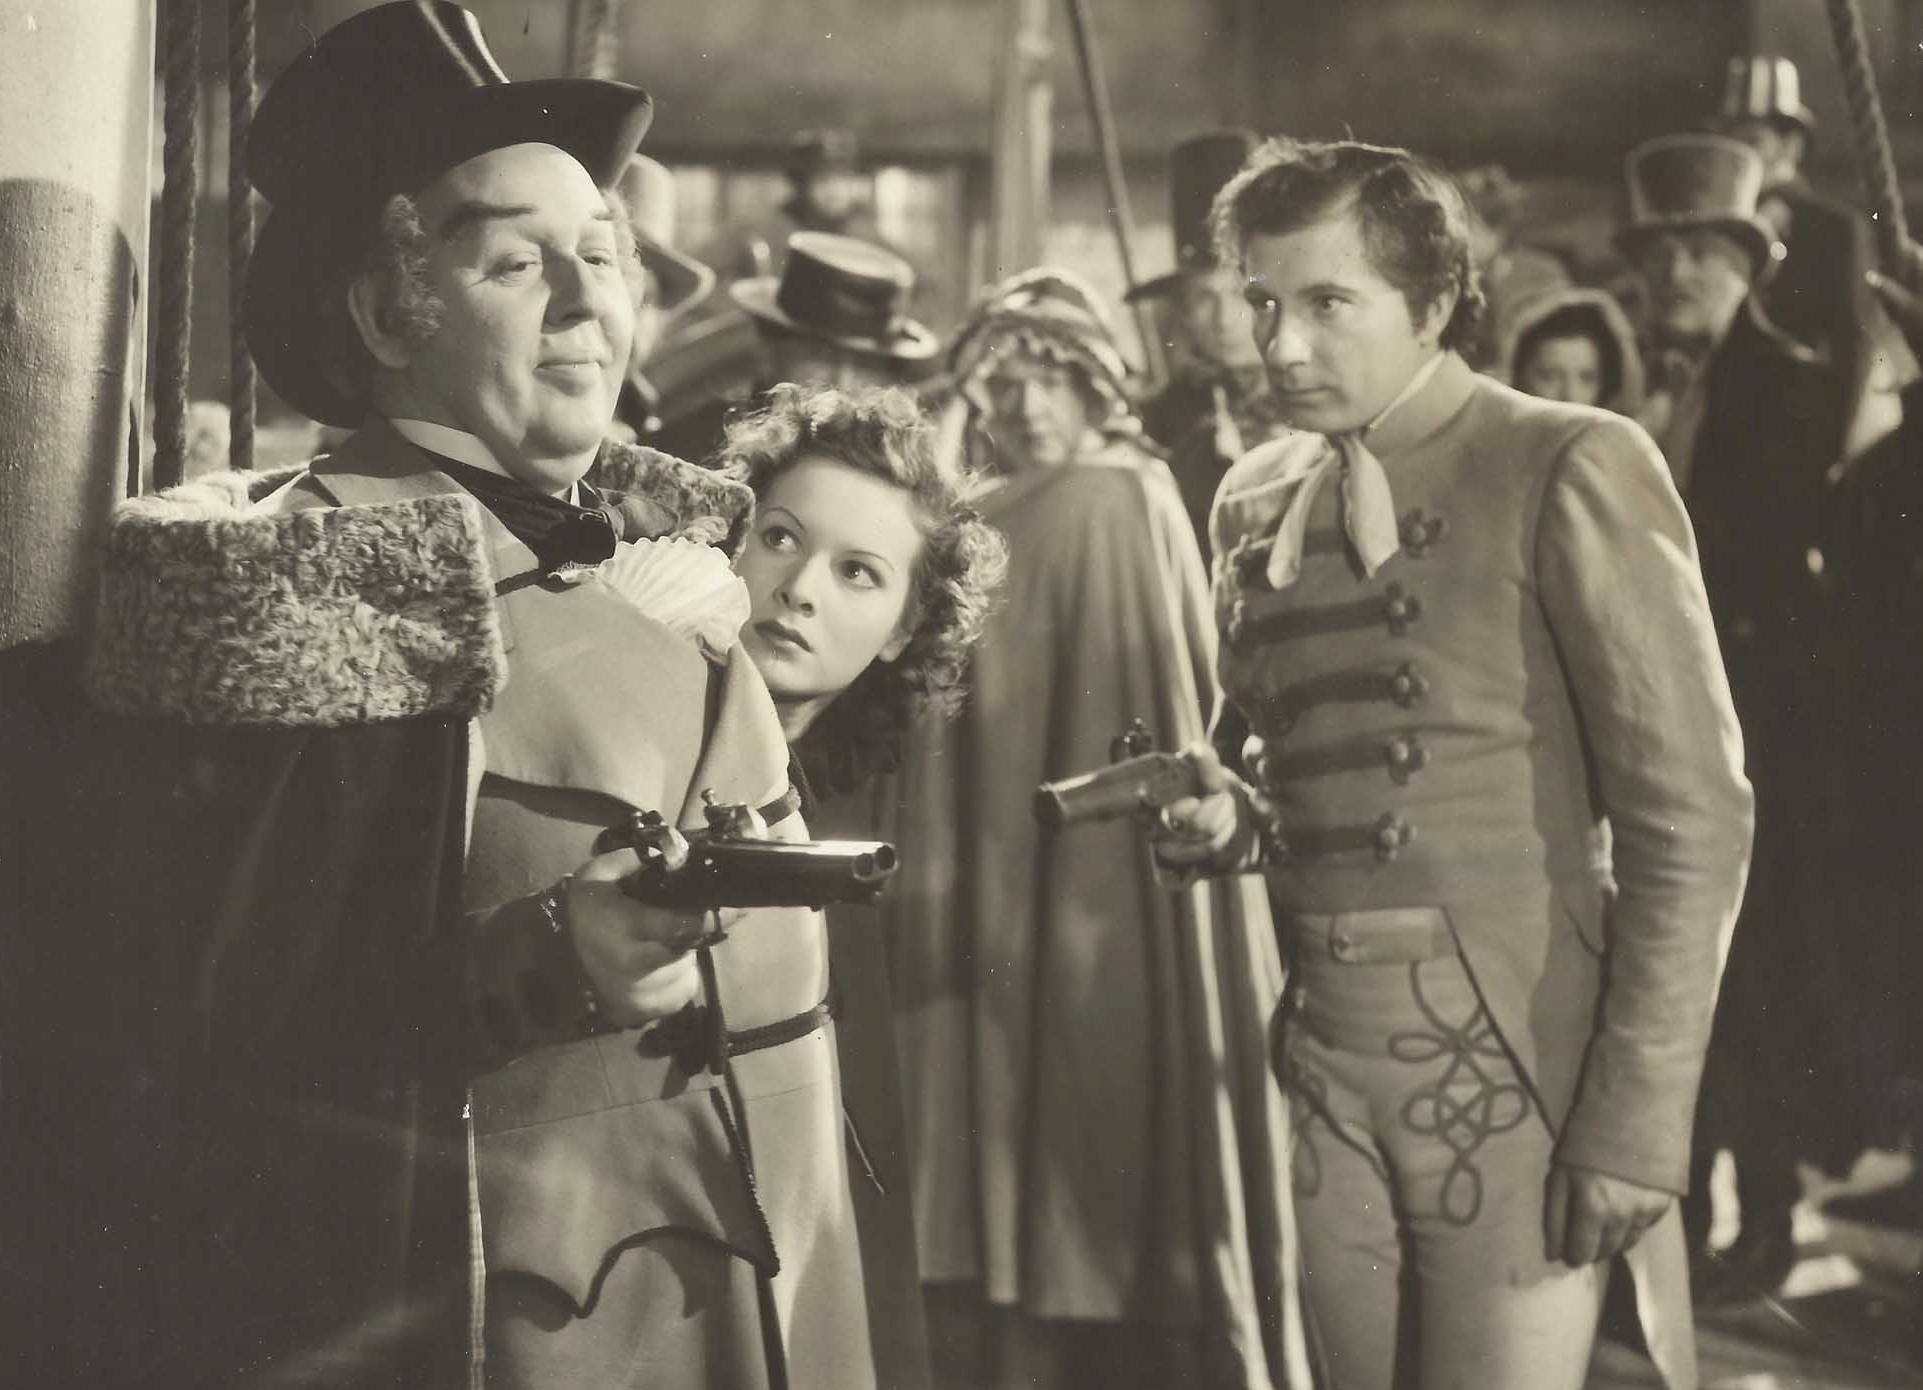 Jamaican standoff: Charles Laughton, Maureen O'Hara and Robert Newton reach an impasse in Jamaica Inn (1939)